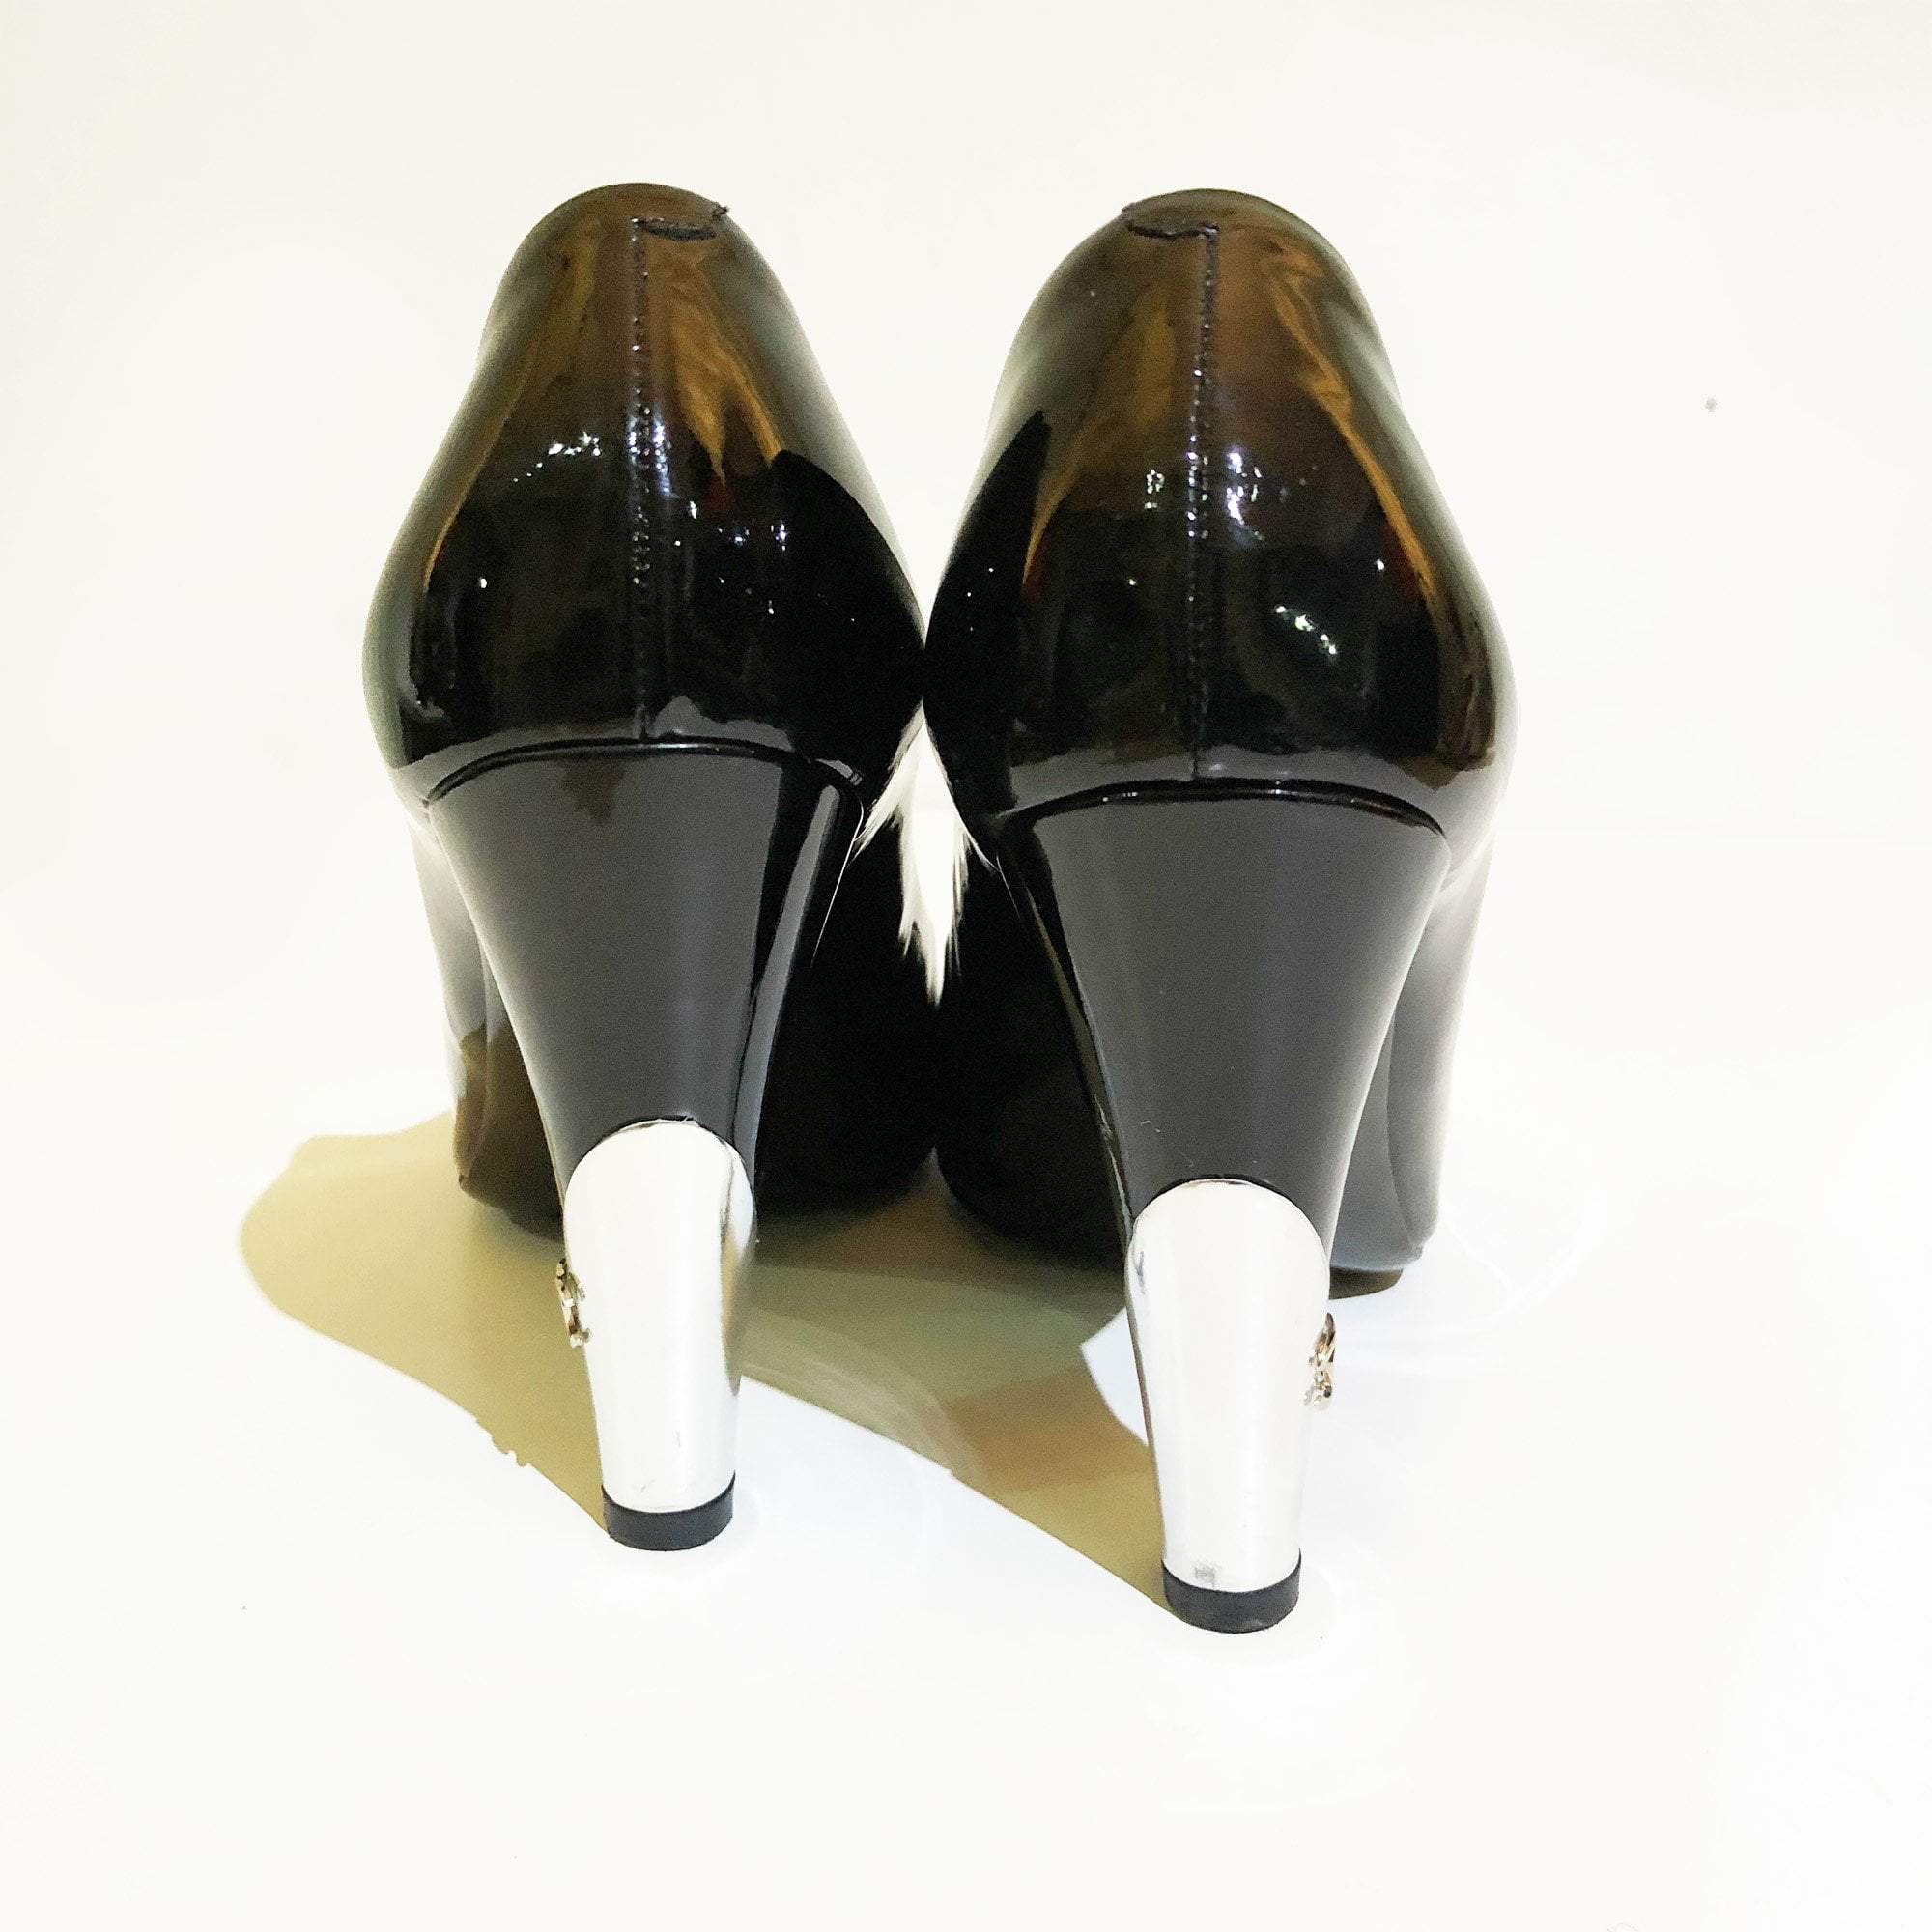 Chanel Black Peep Toe Patent Leather Pumps